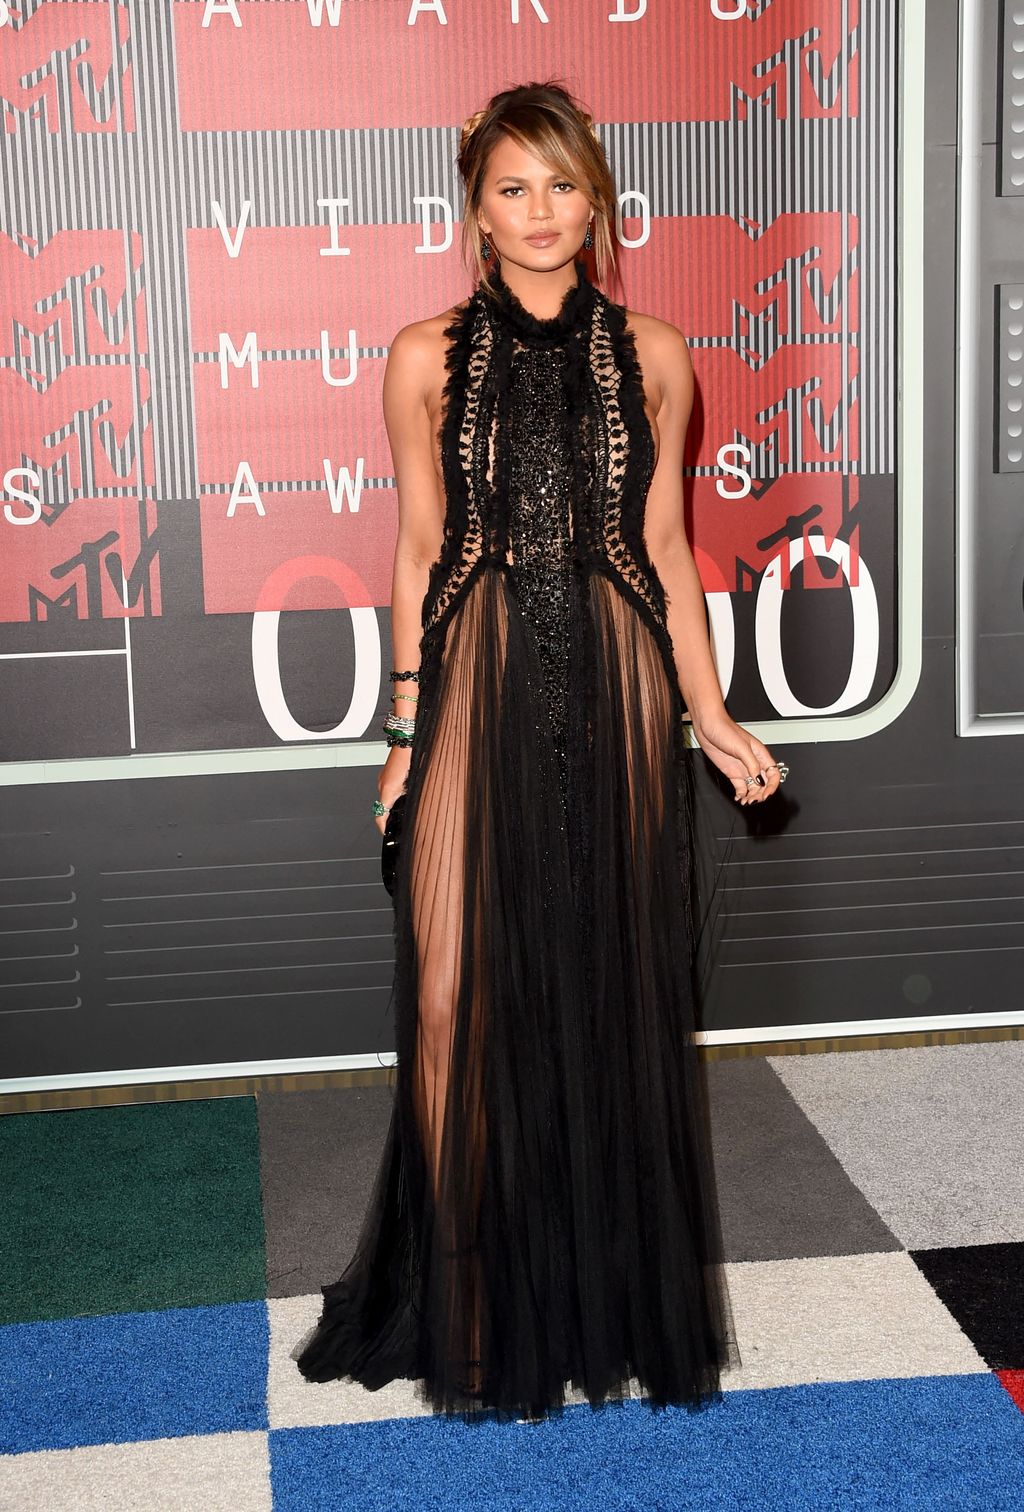 LOS ANGELES, CA - AUGUST 30:  Model Chrissy Teigen attends the 2015 MTV Video Music Awards at Microsoft Theater on August 30, 2015 in Los Angeles, California.  (Photo by Jason Merritt/Getty Images)